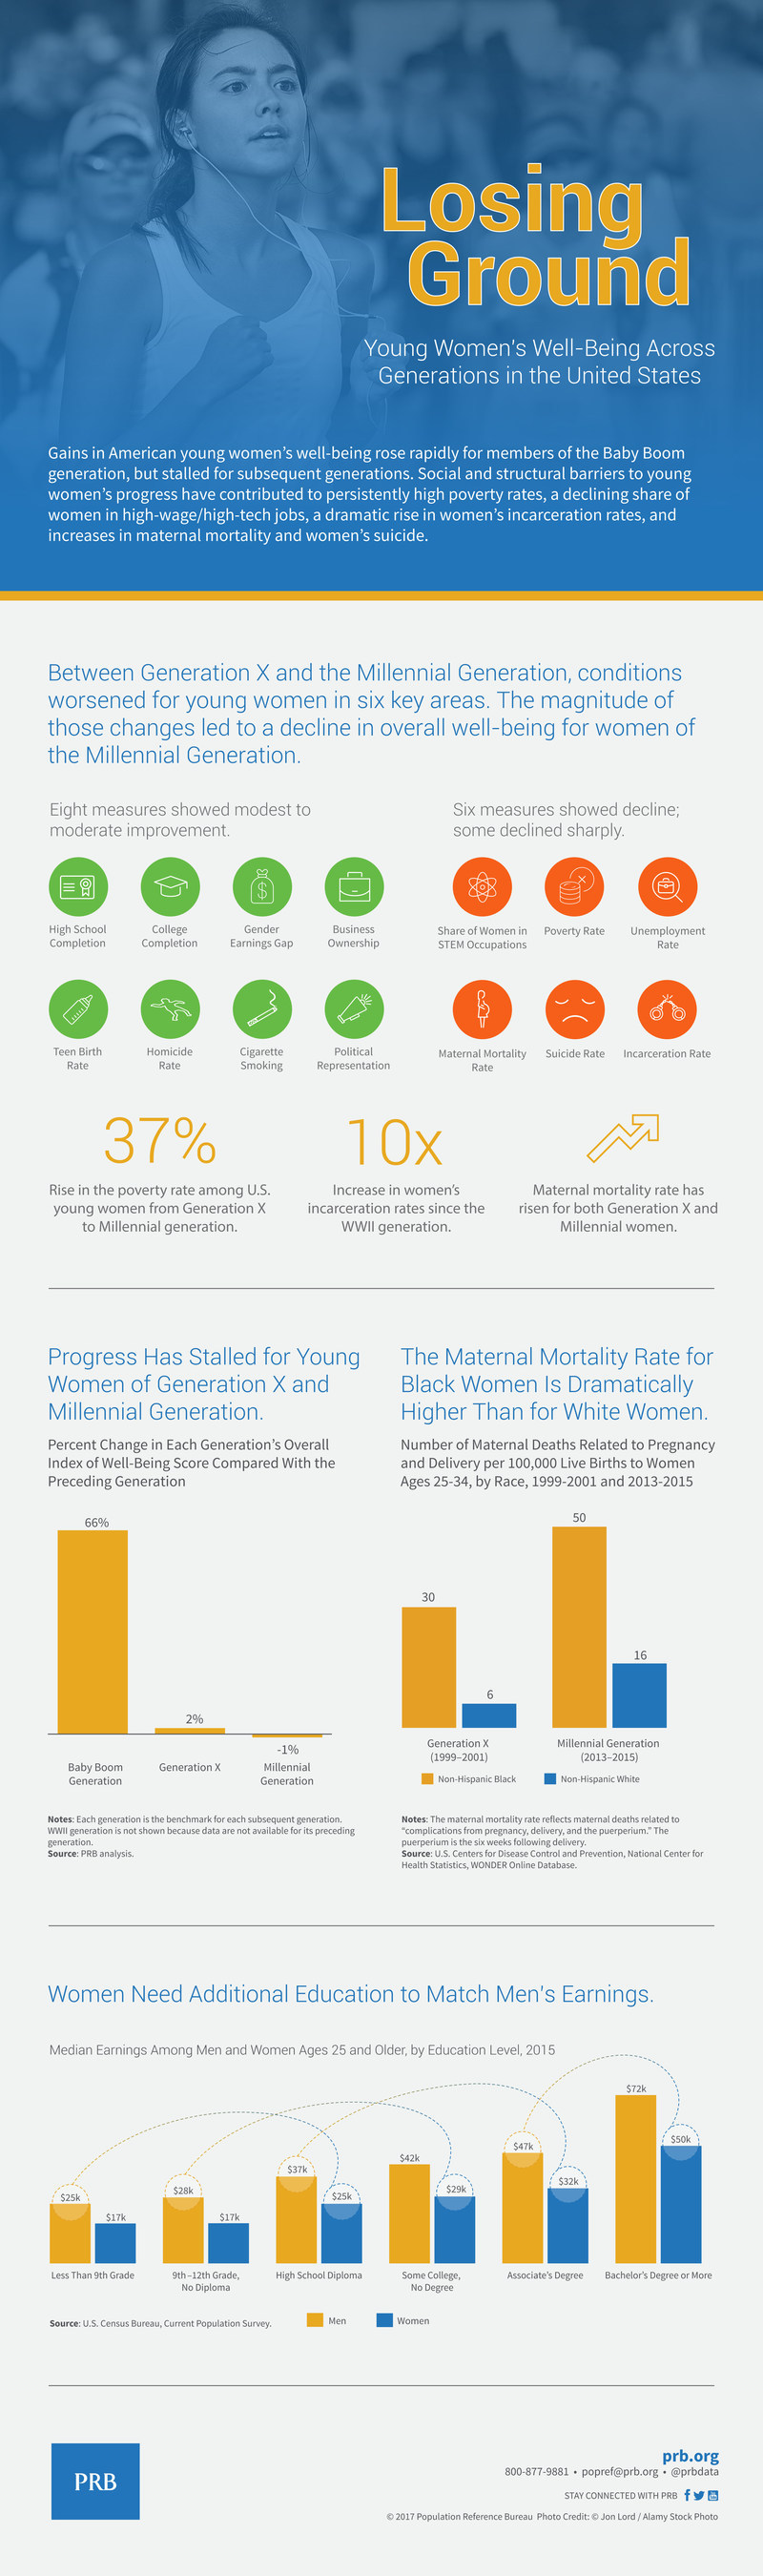 State of U.S. Women's Well-Being Infographic